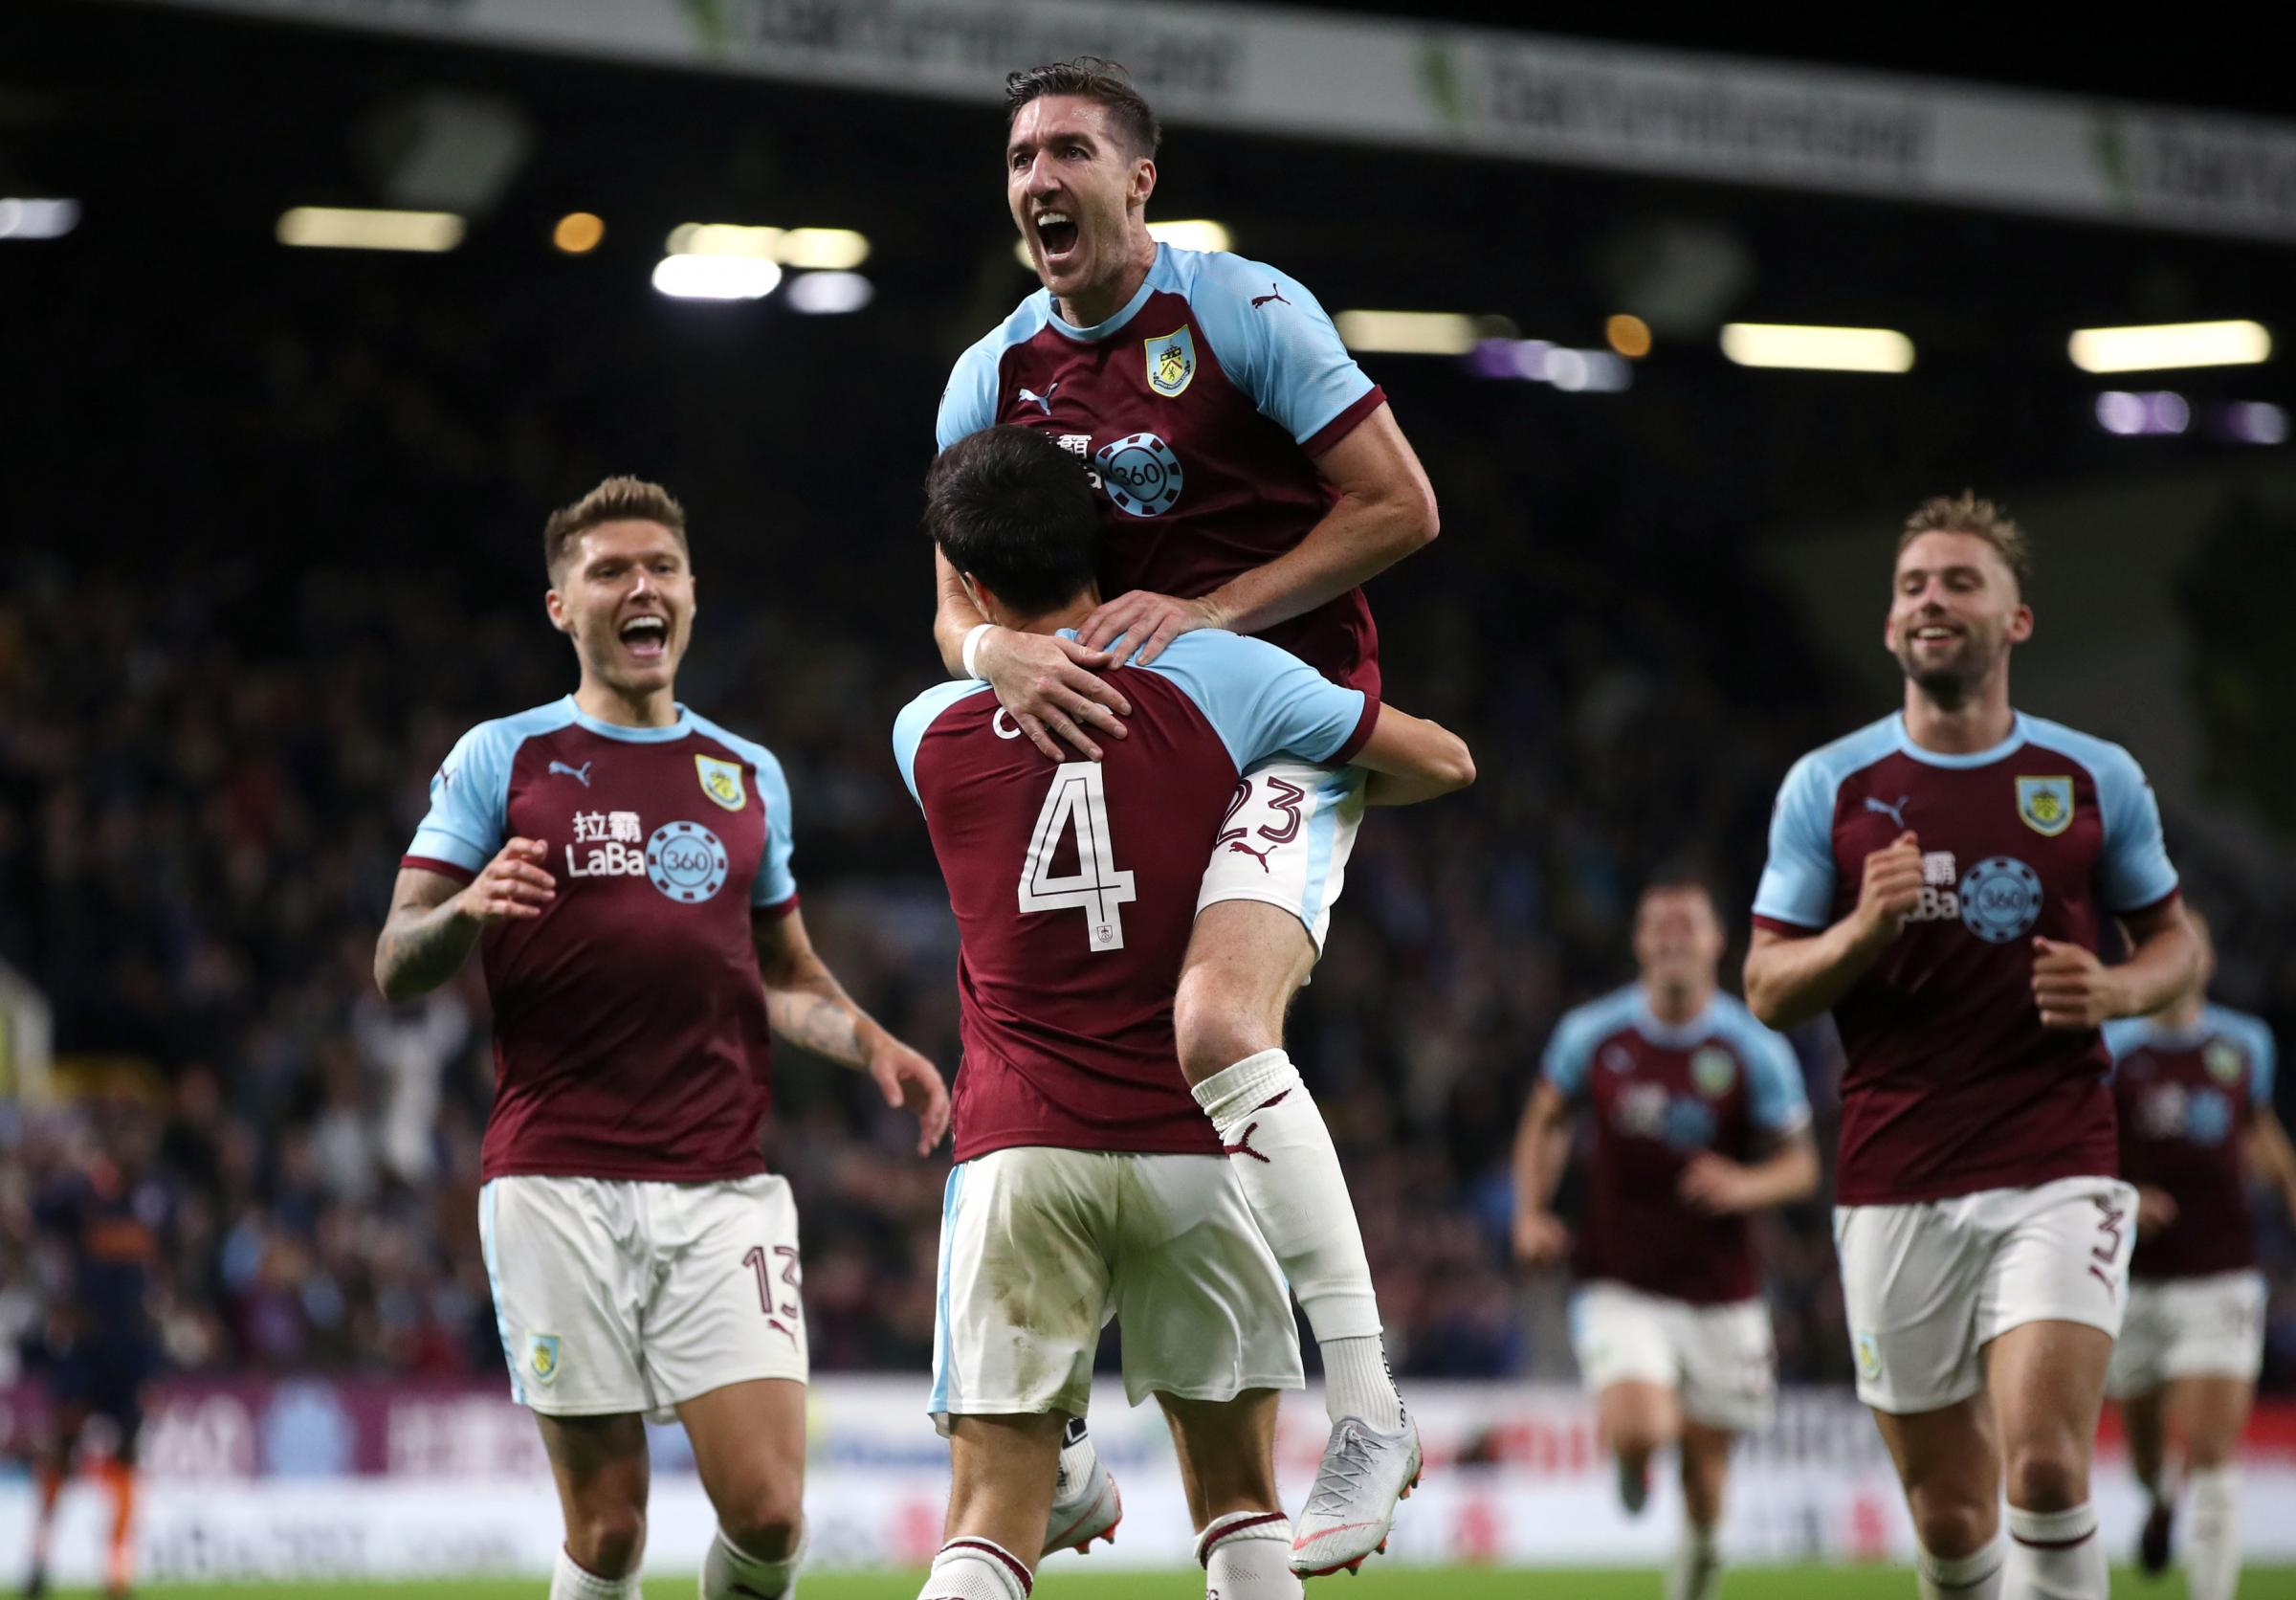 Burnley's Jack Cork celebrates scoring his side's first goal of the game with Stephen Ward (top) during the UEFA Europa League, Third Qualifying Round match at Turf Moor, Burnley. PRESS ASSOCIATION Photo. Picture date: Thursday Augus